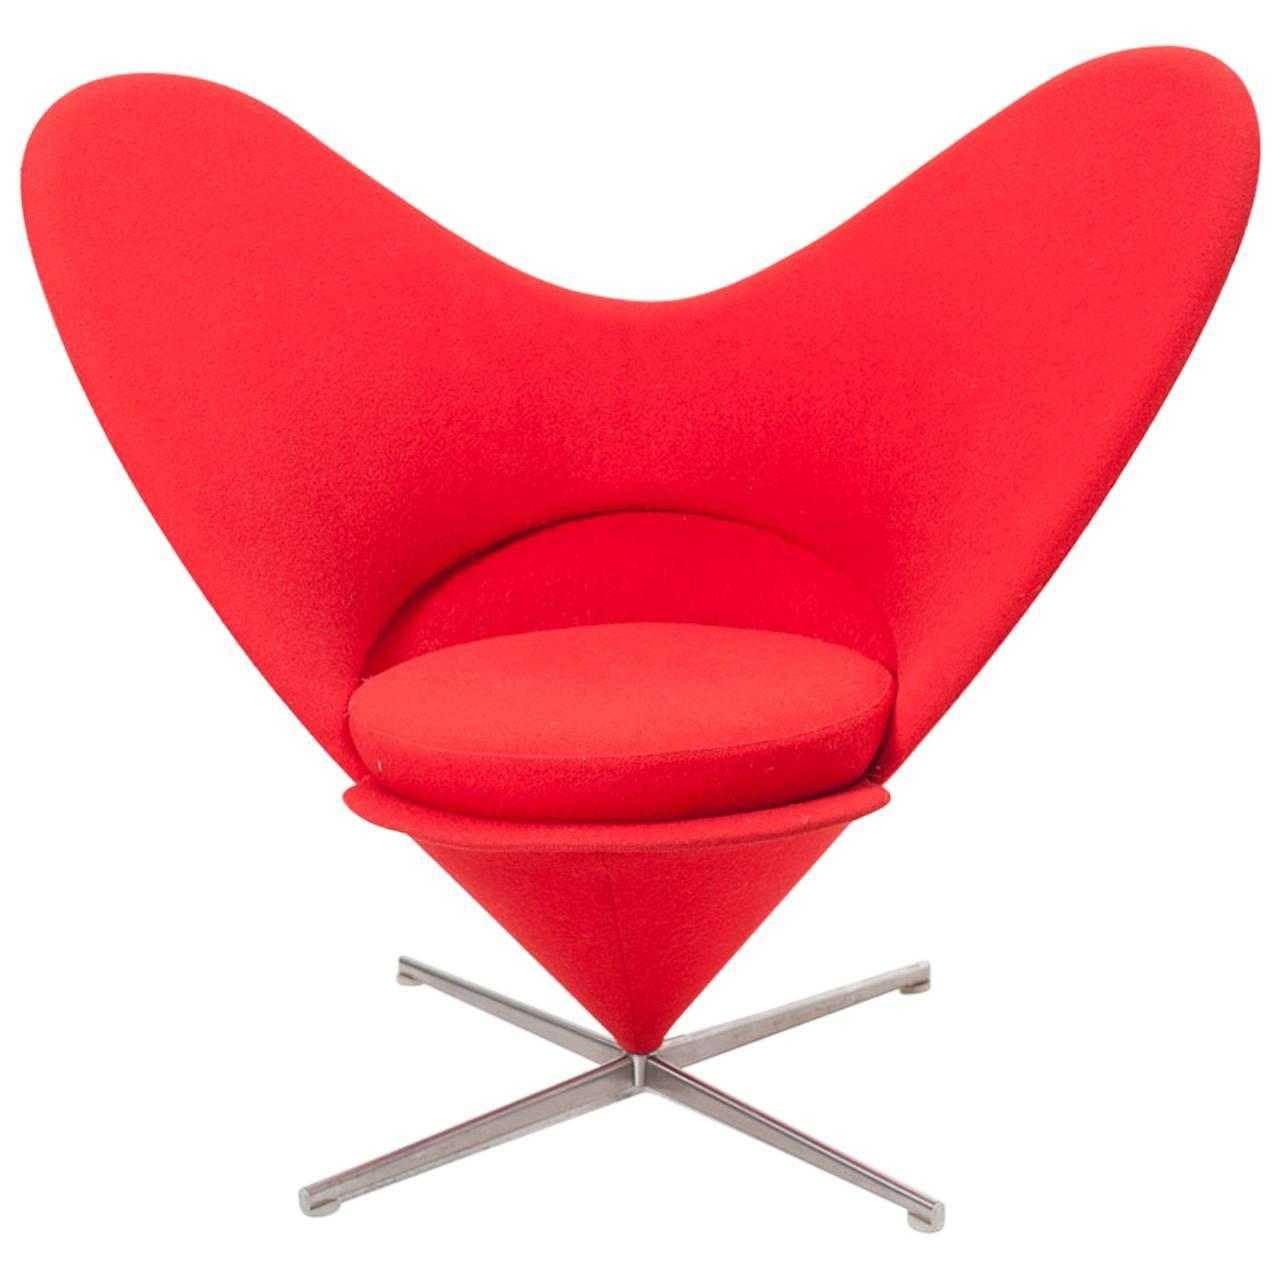 Armchair Heart Cone By Verner Panton For Vitra At 1stdibs